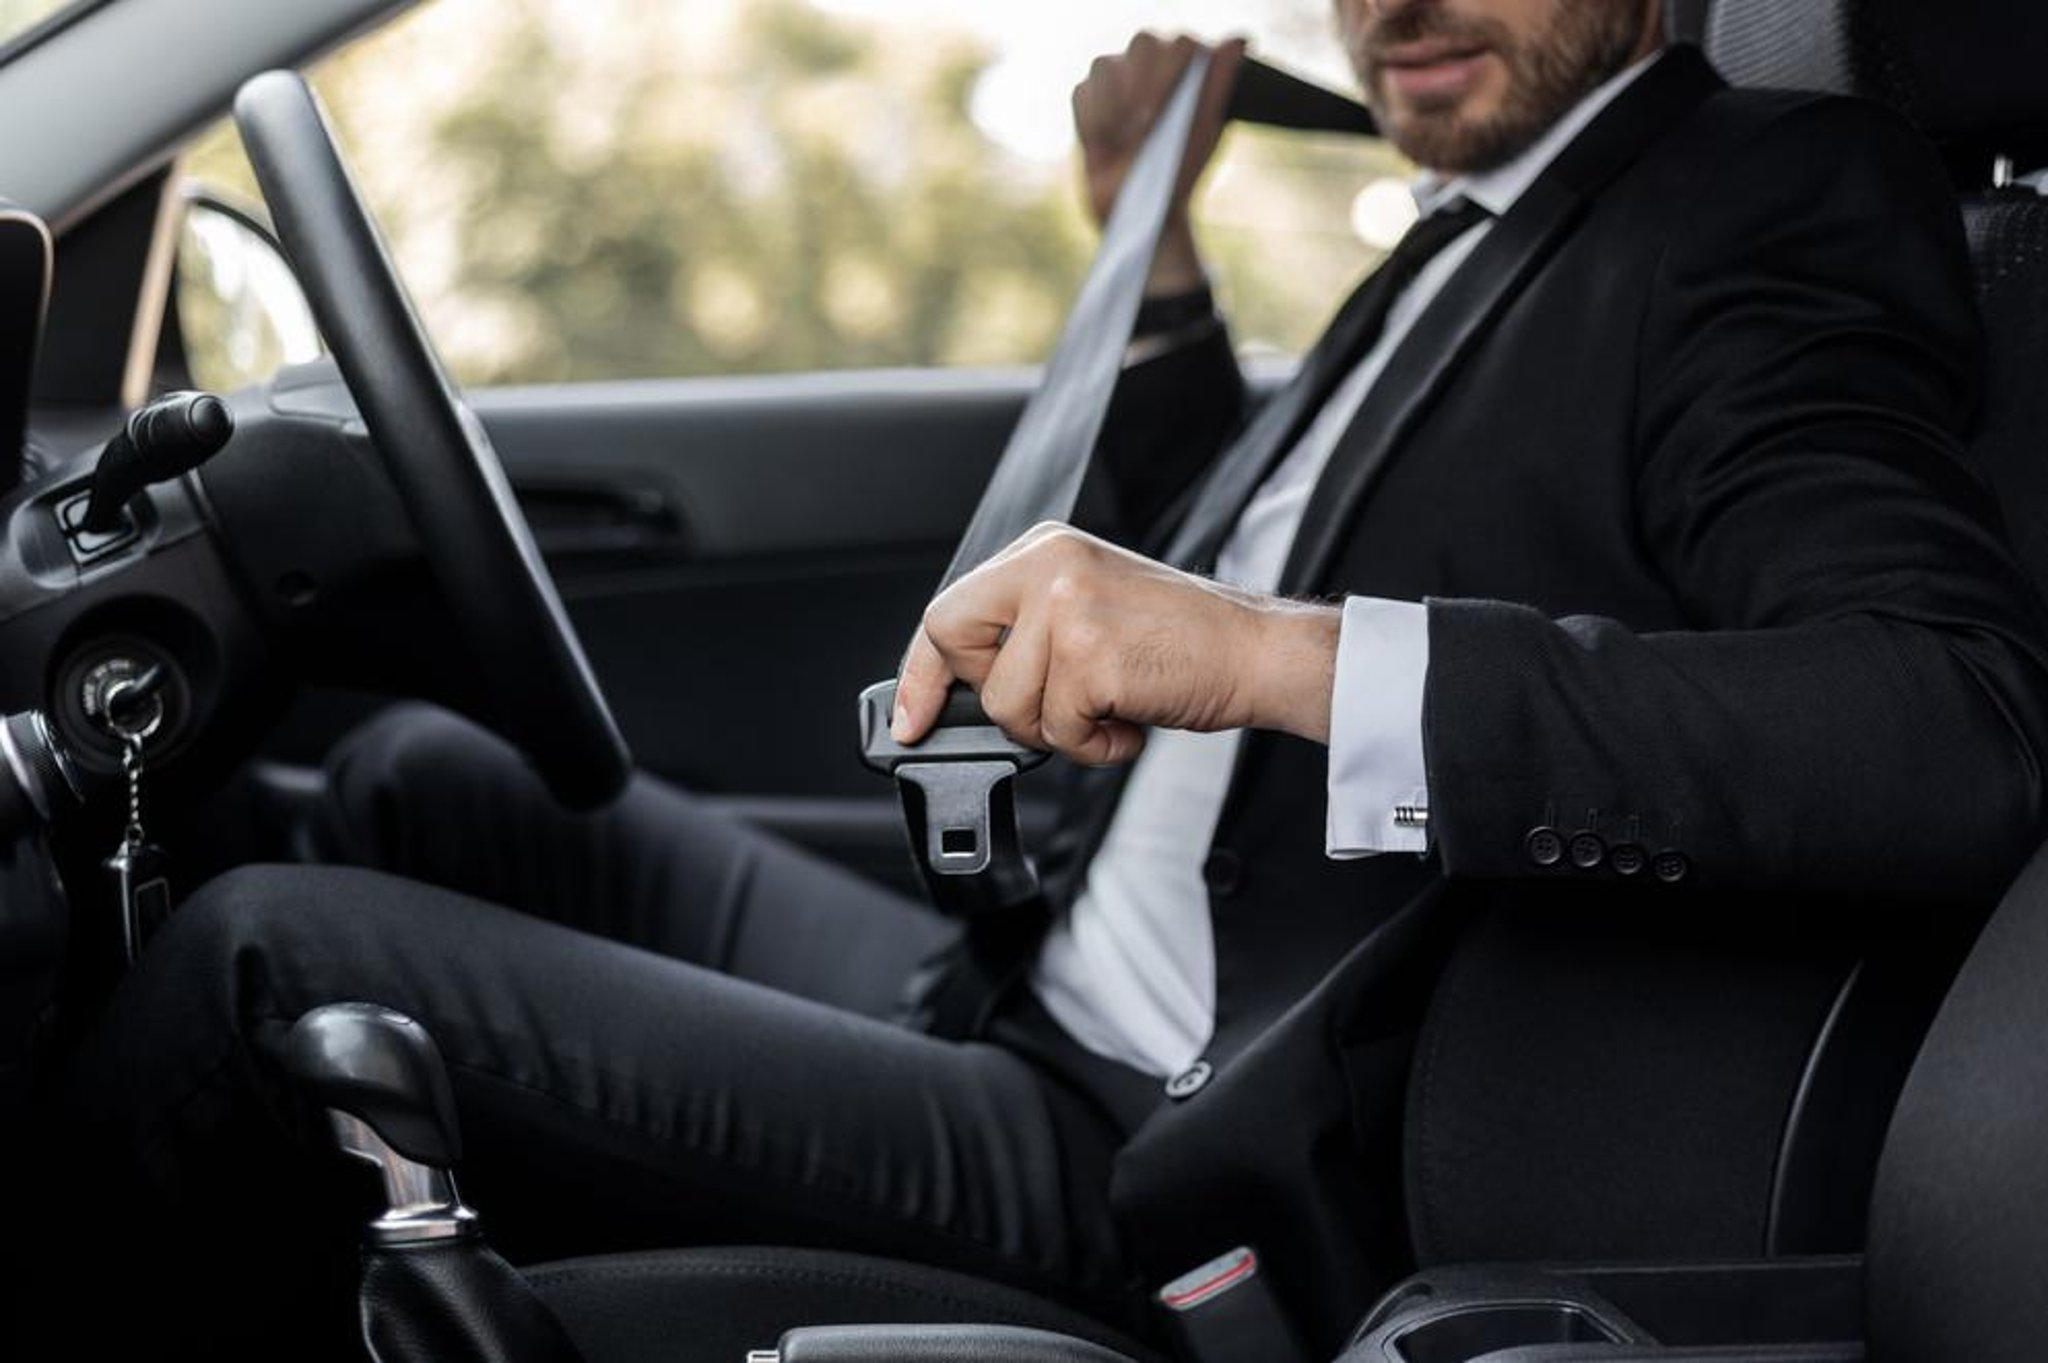 Seat belt law UK: when and where you don't need to wear one, plus the fines for ignoring the rules